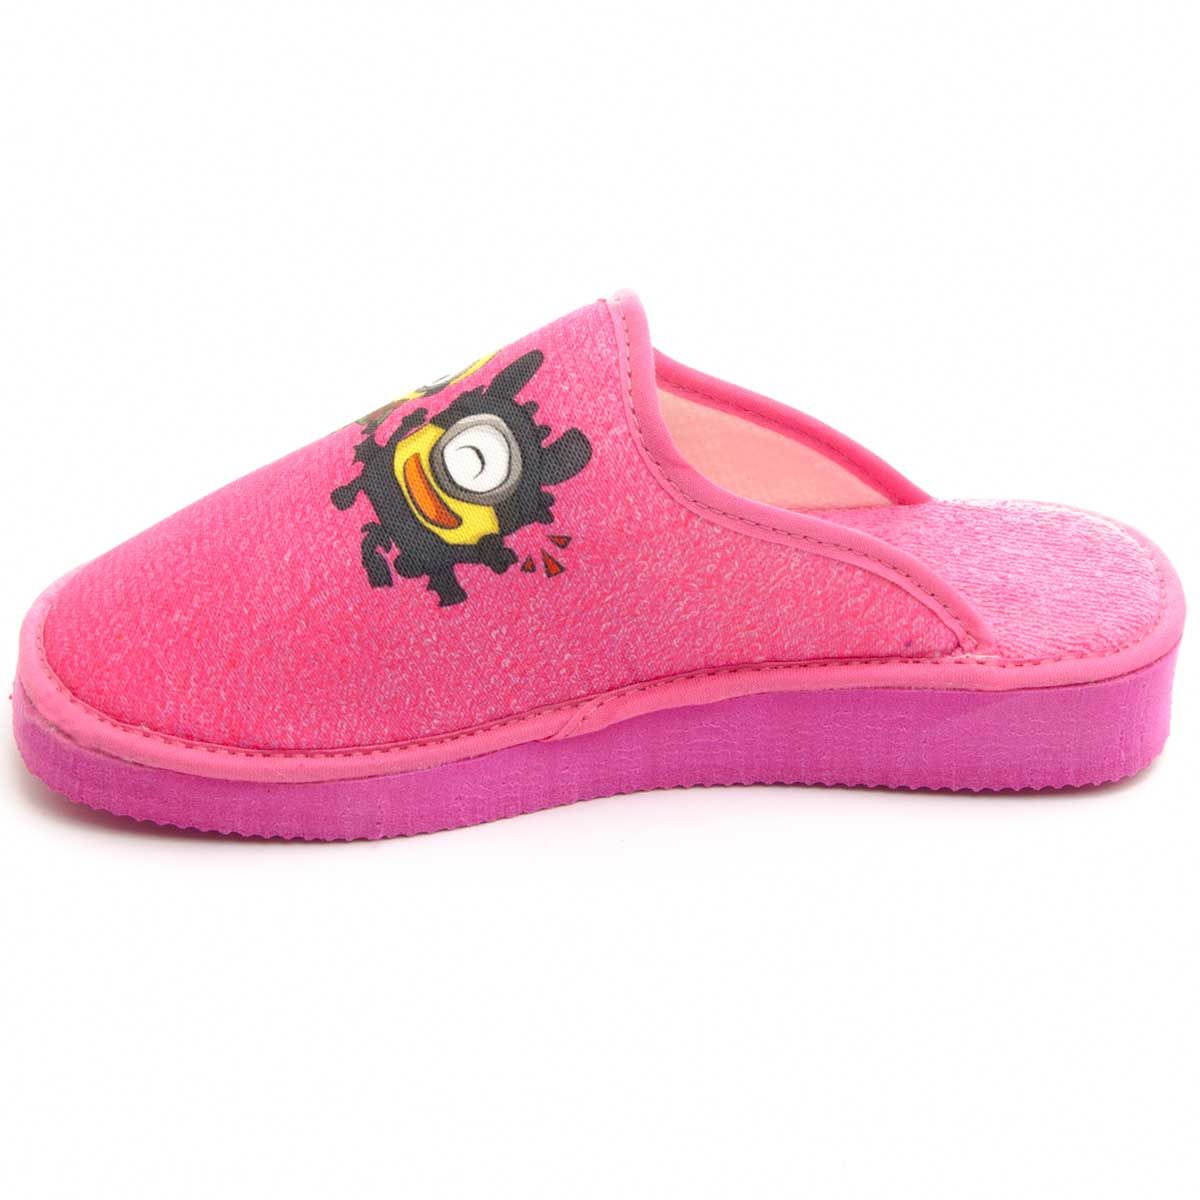 Northome Comfortable Slipper in Pink